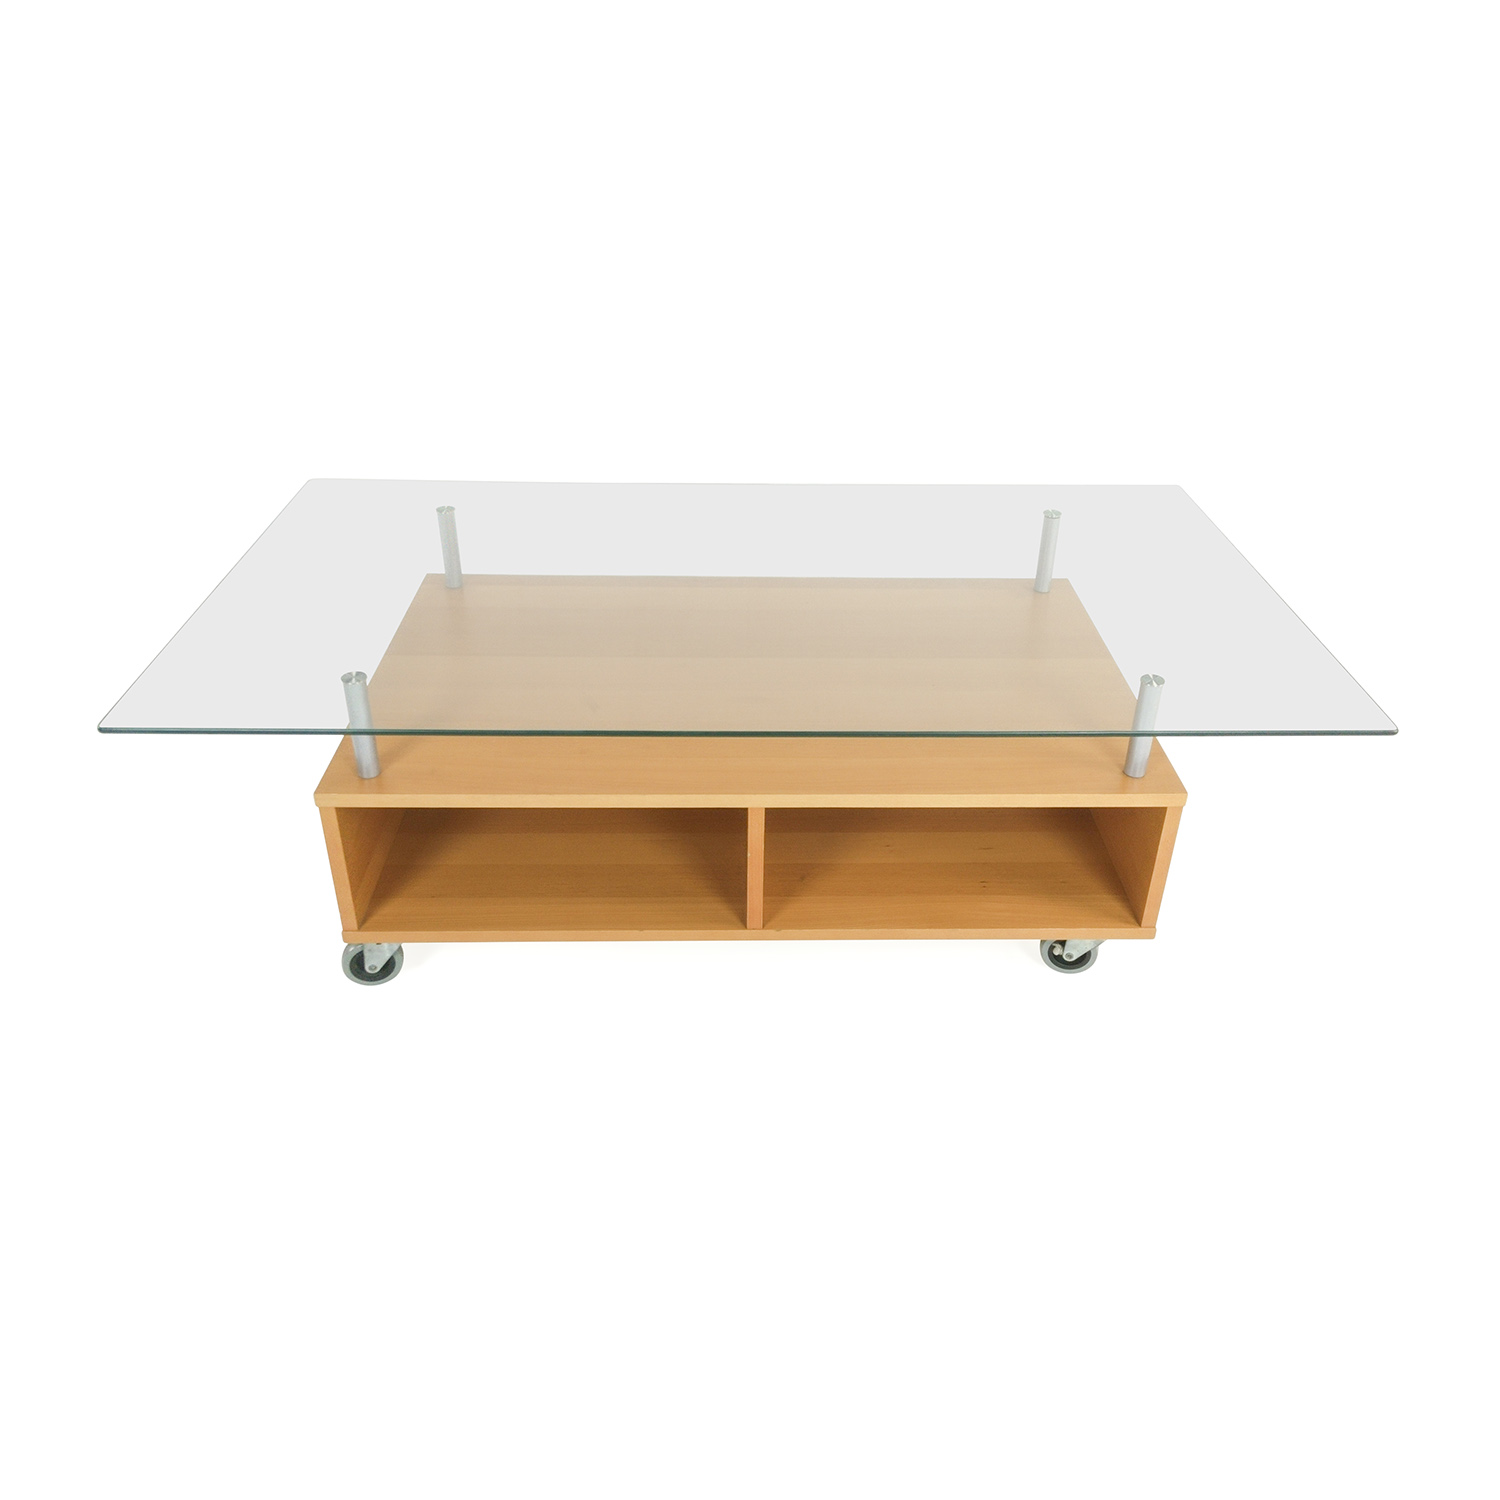 Ikea Marble Top Coffee Table: Faux Marble Coffee Table / Tables